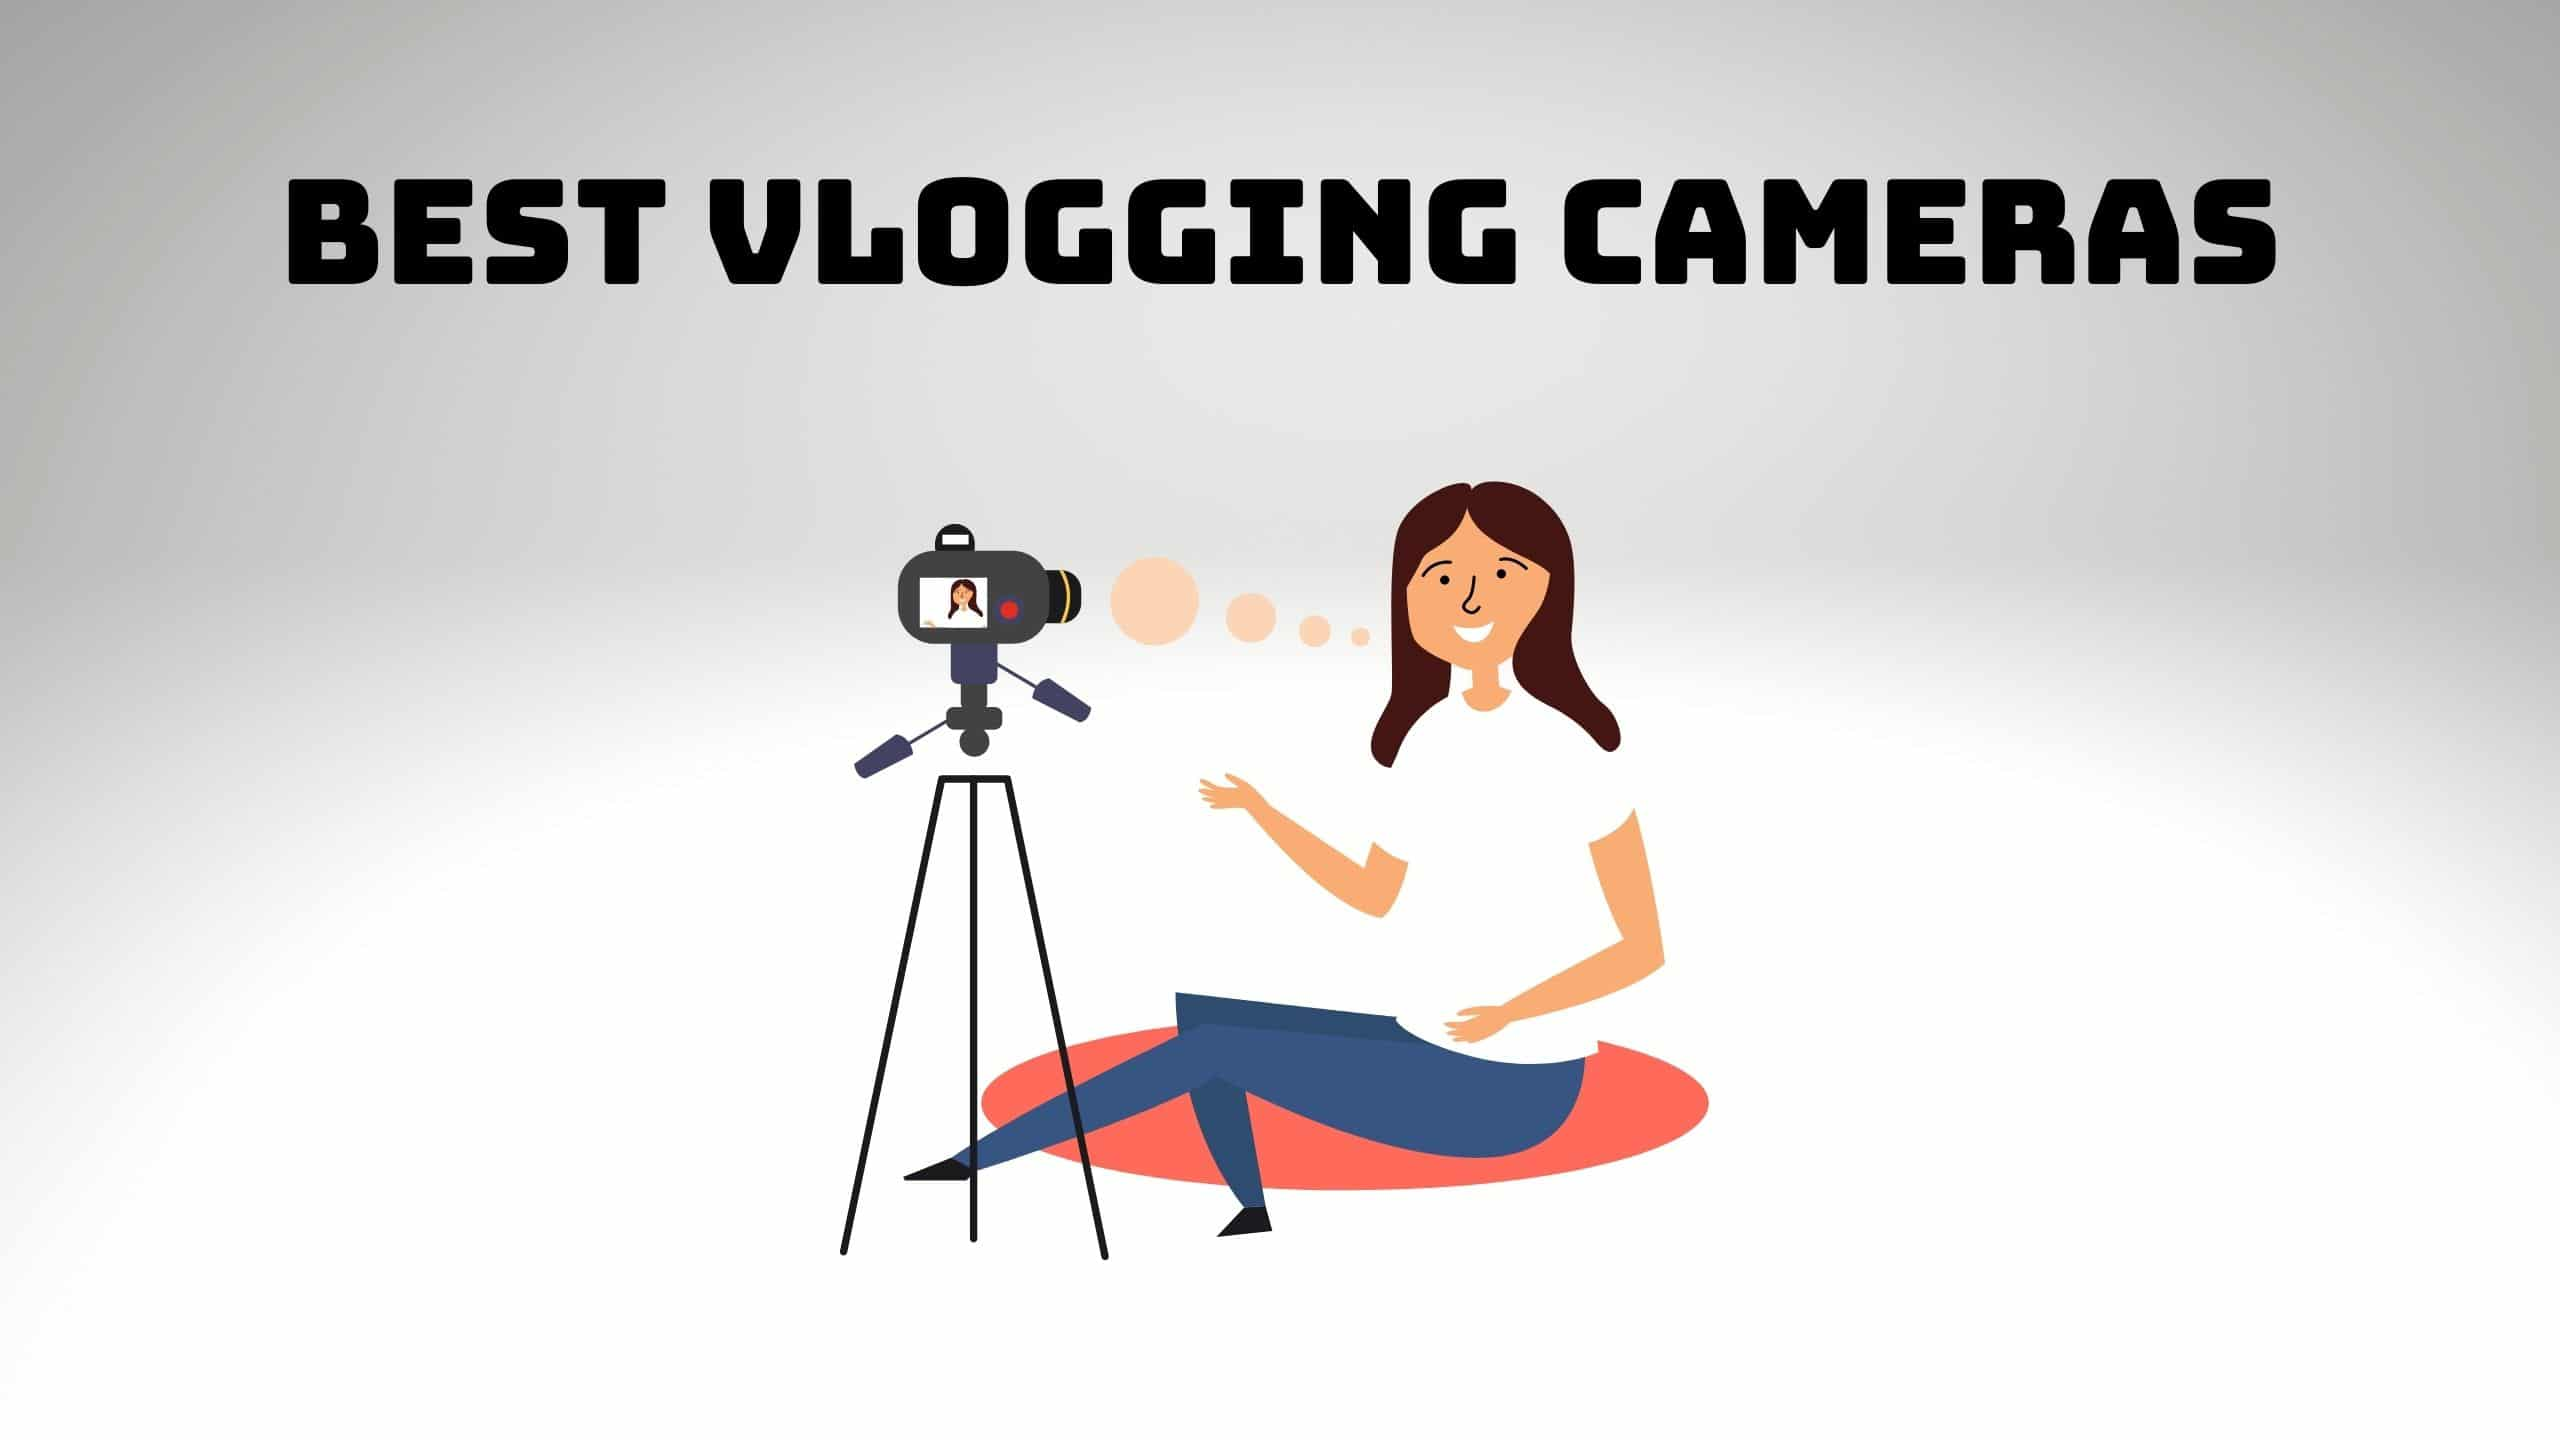 Best Vlogging Cameras (1)